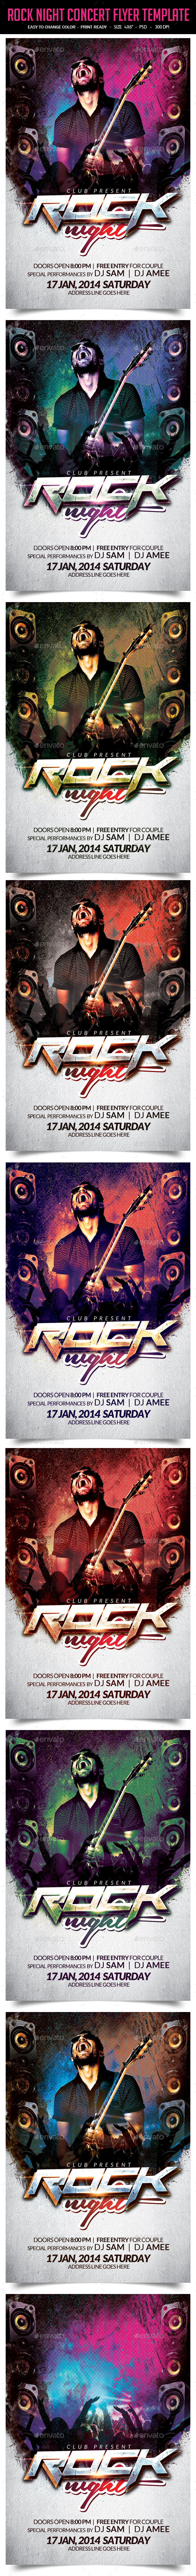 GraphicRiver Rock Night Concert Flyer Template 10265624